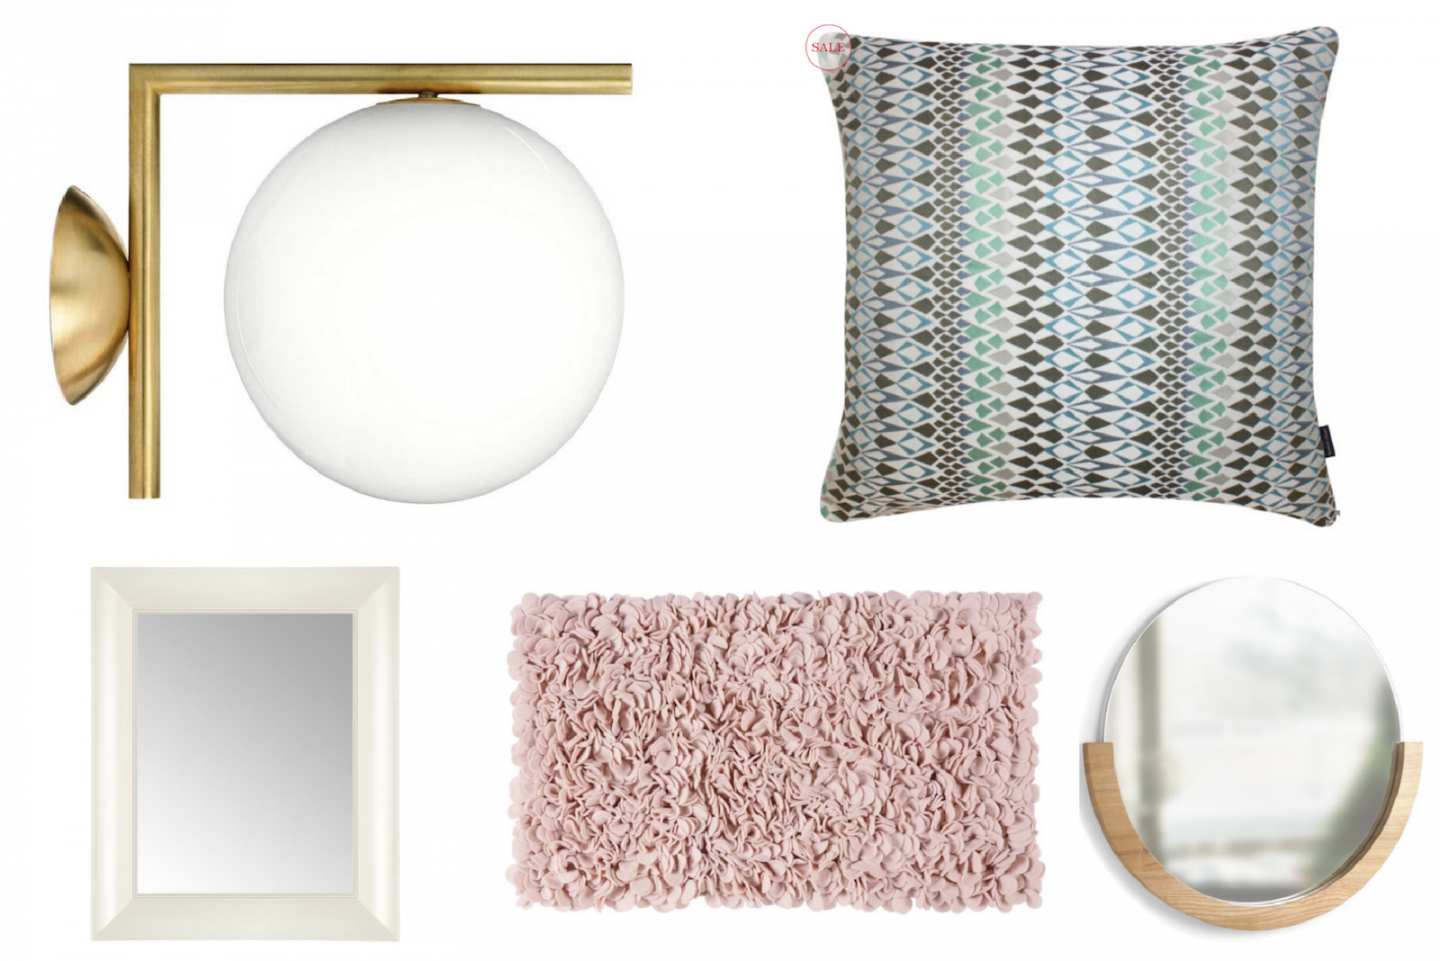 Weekly Window Shop: Things I've Bought for the House